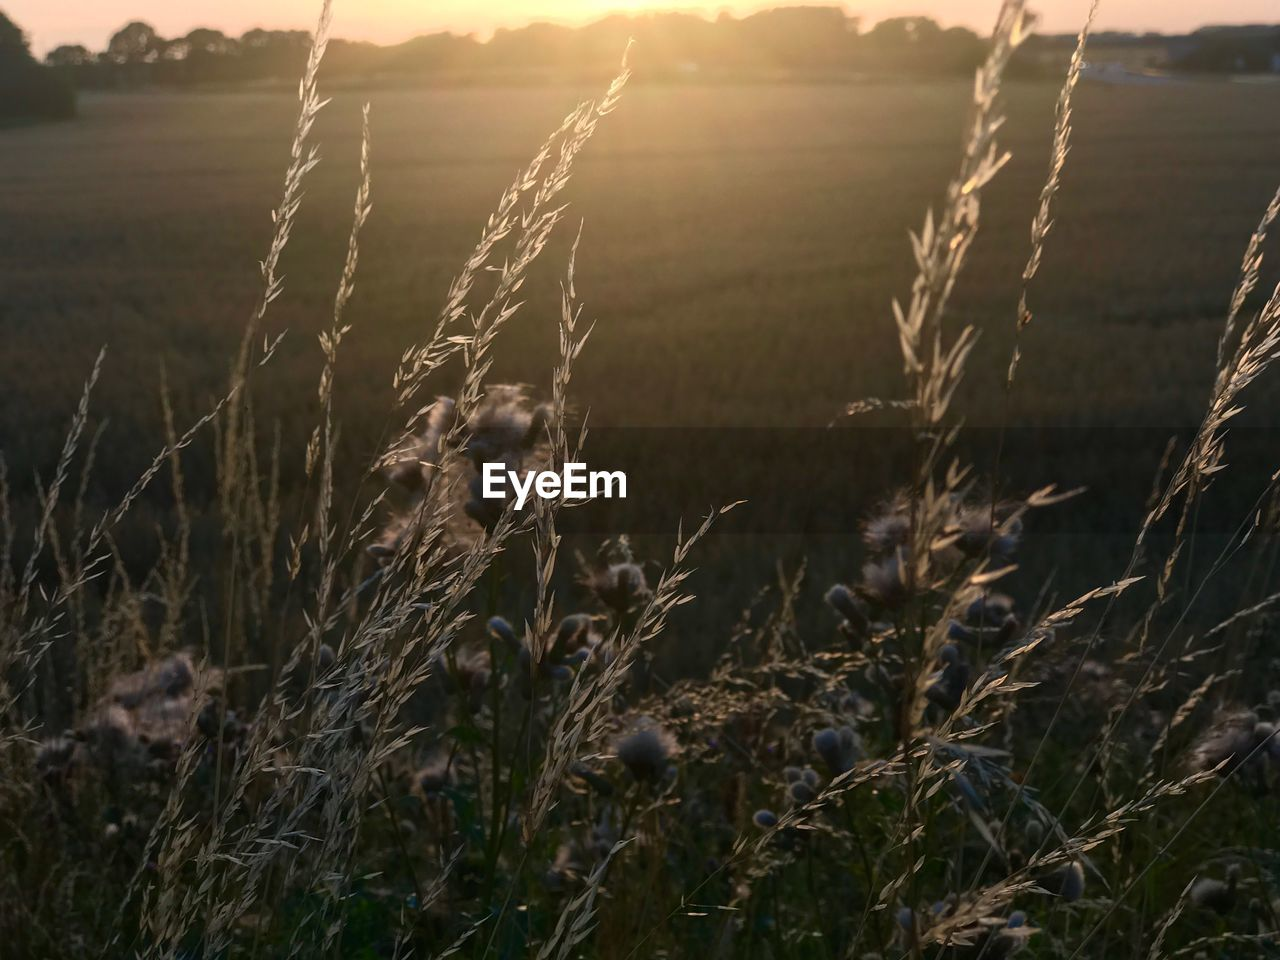 plant, land, tranquility, field, nature, sunset, beauty in nature, growth, tranquil scene, landscape, no people, sunlight, sky, environment, focus on foreground, close-up, scenics - nature, outdoors, day, rural scene